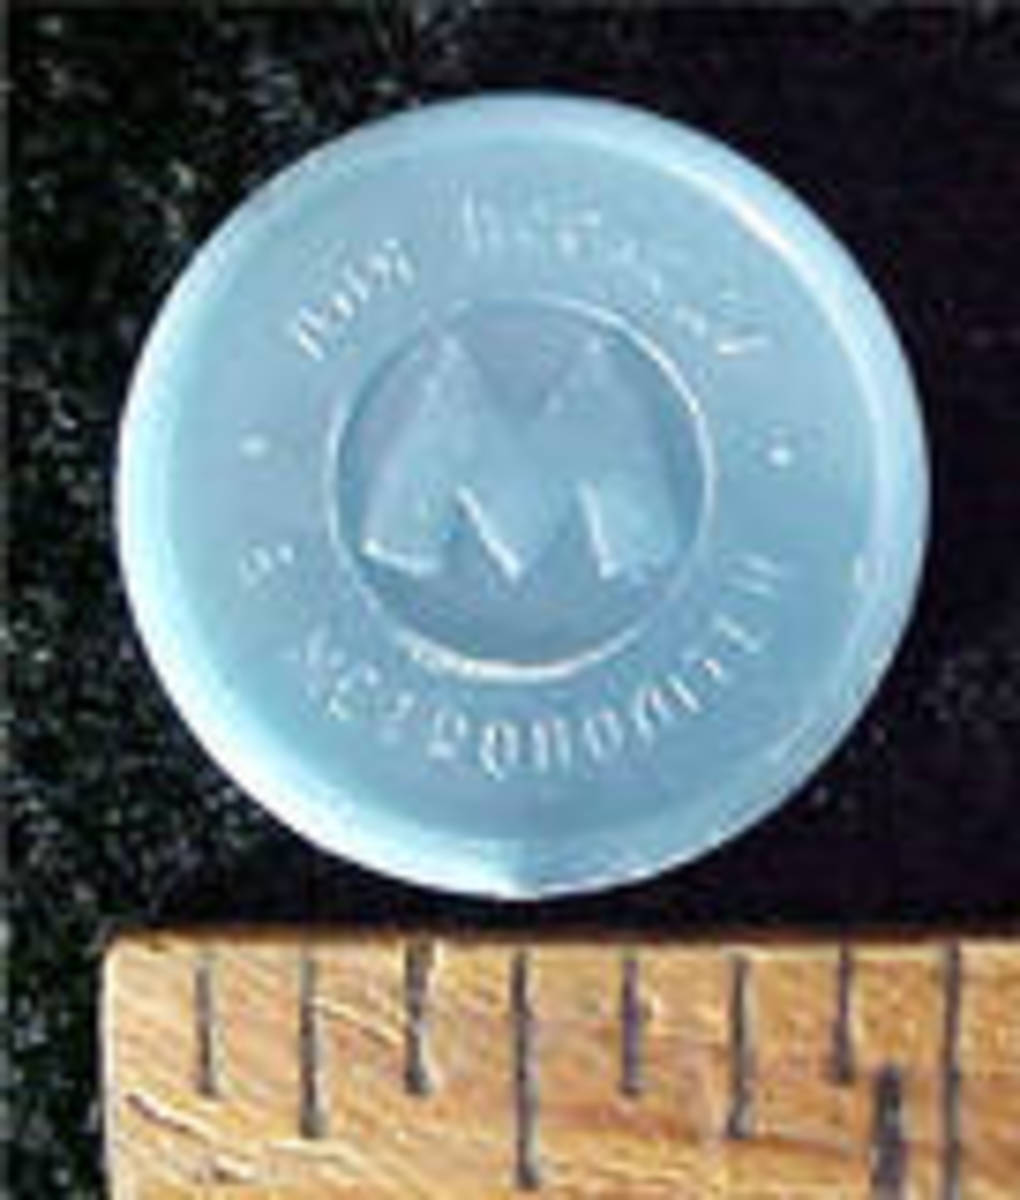 The transit token of the Moscow Metro. That name is on the lower section of the token.